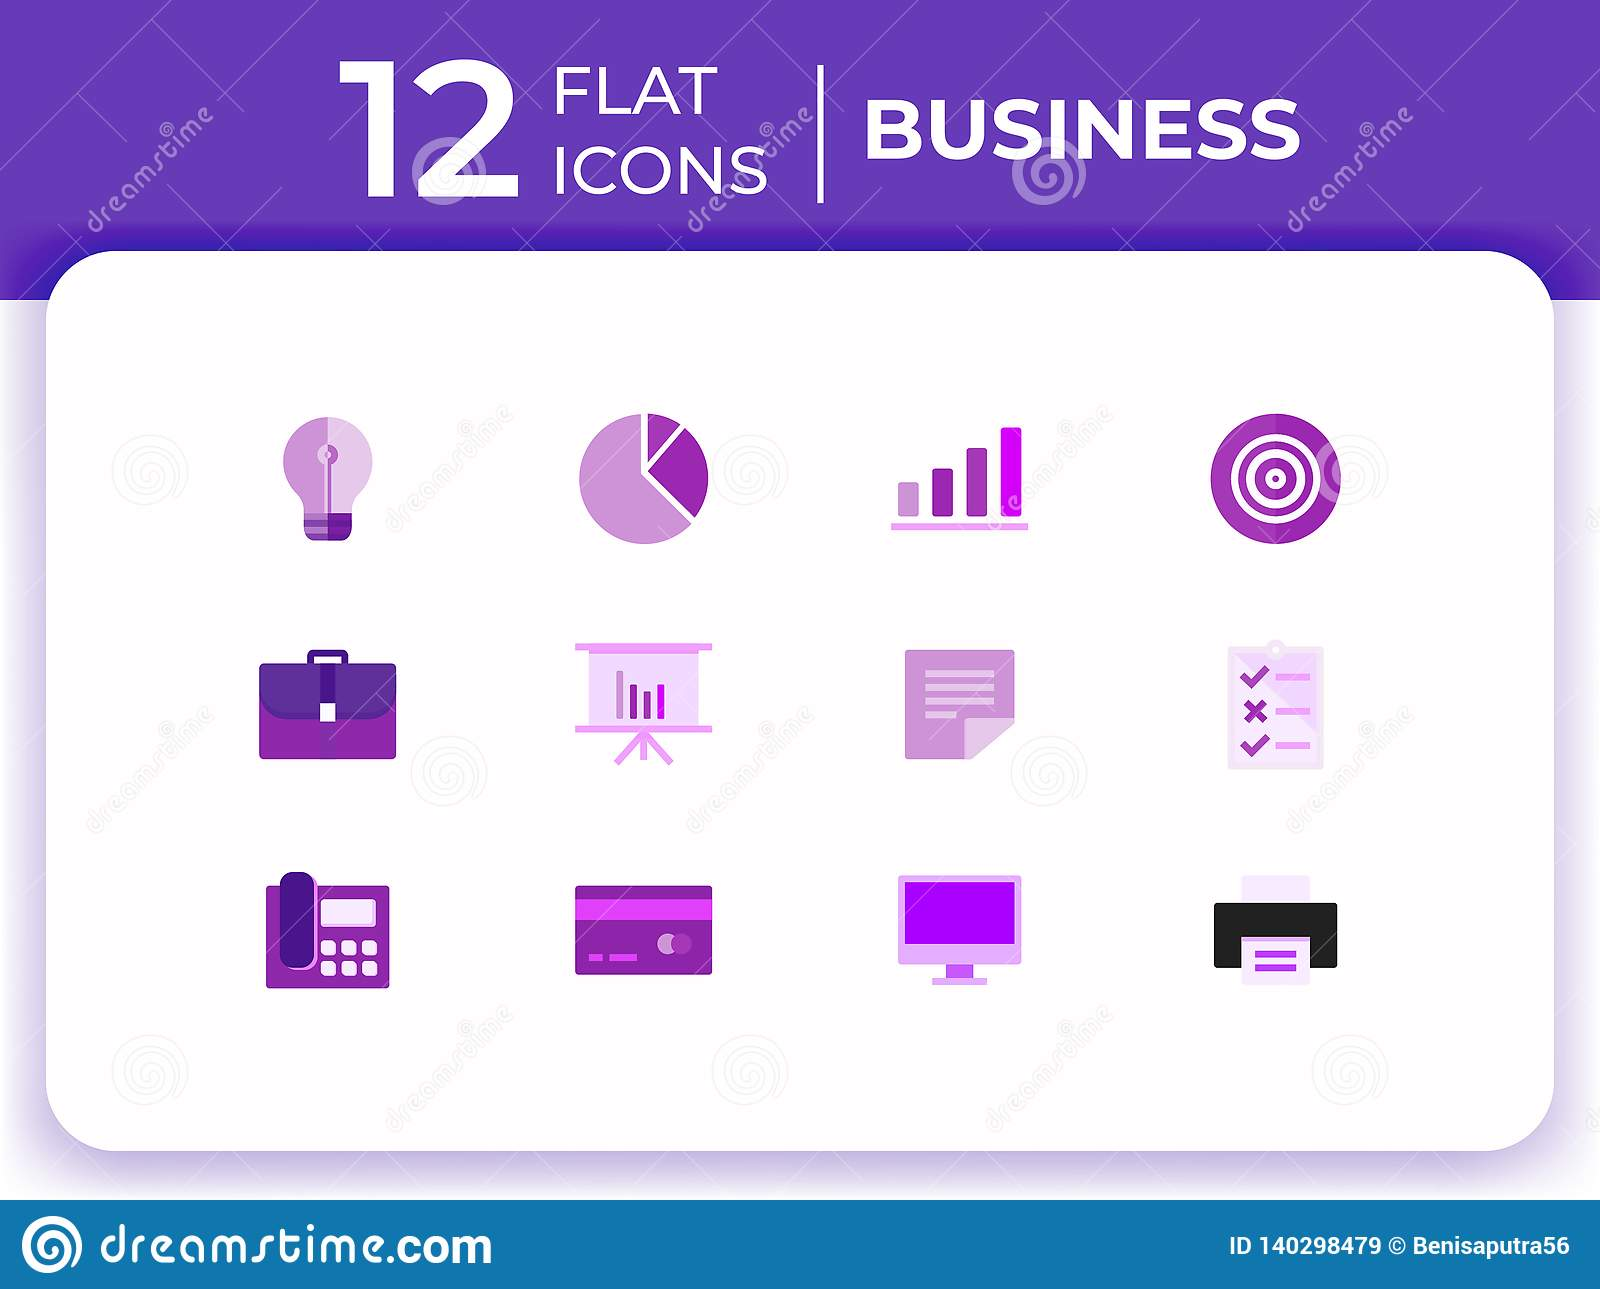 Set Of 12 Business Modern Flat Icons For Website, Flat Business